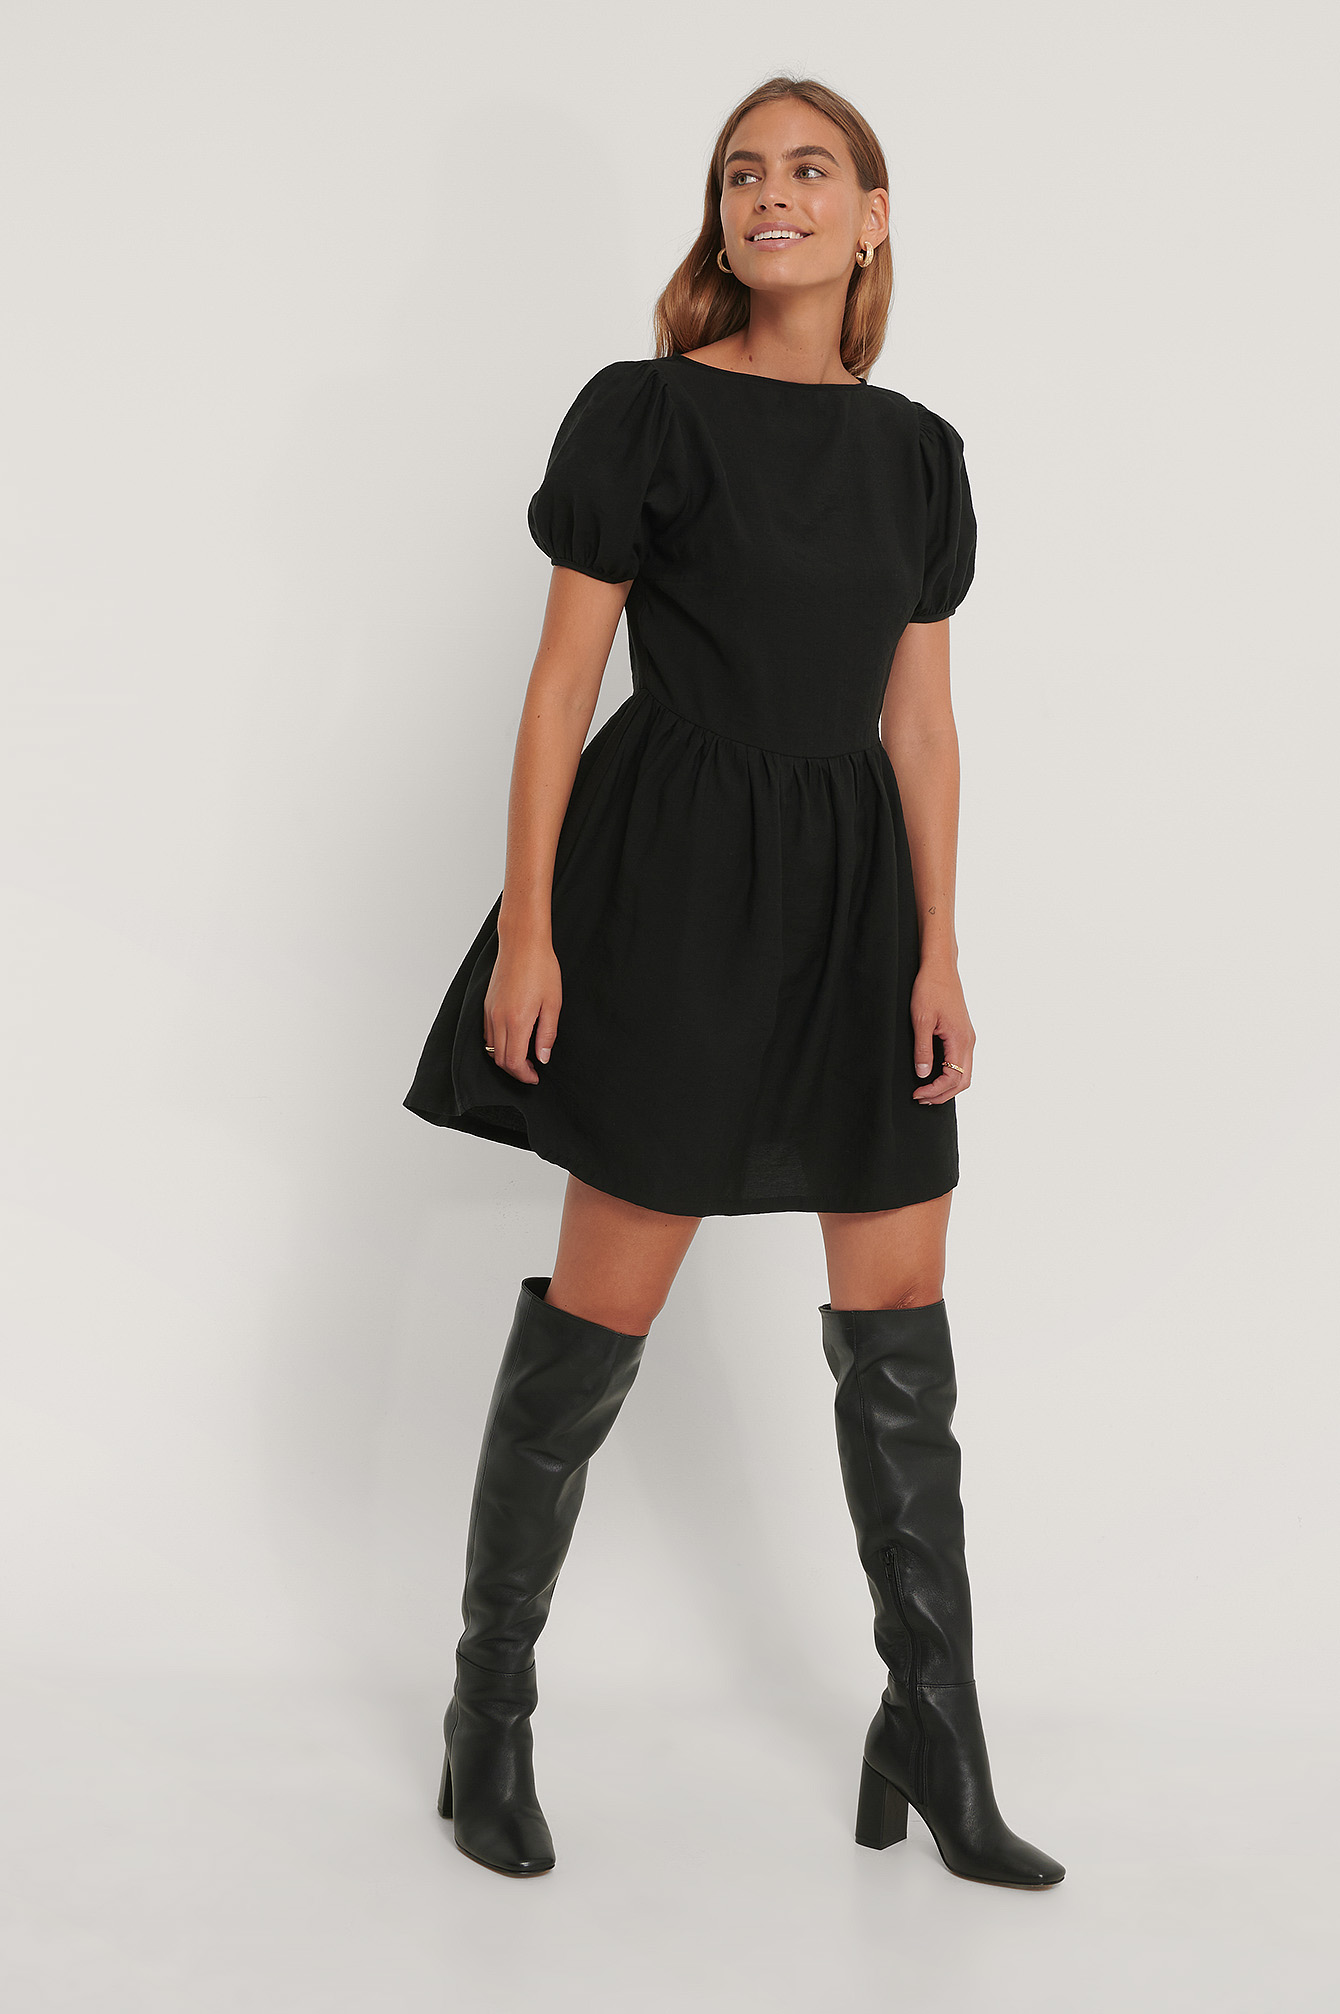 Black Puff Sleeves Gathered Skirt Dress